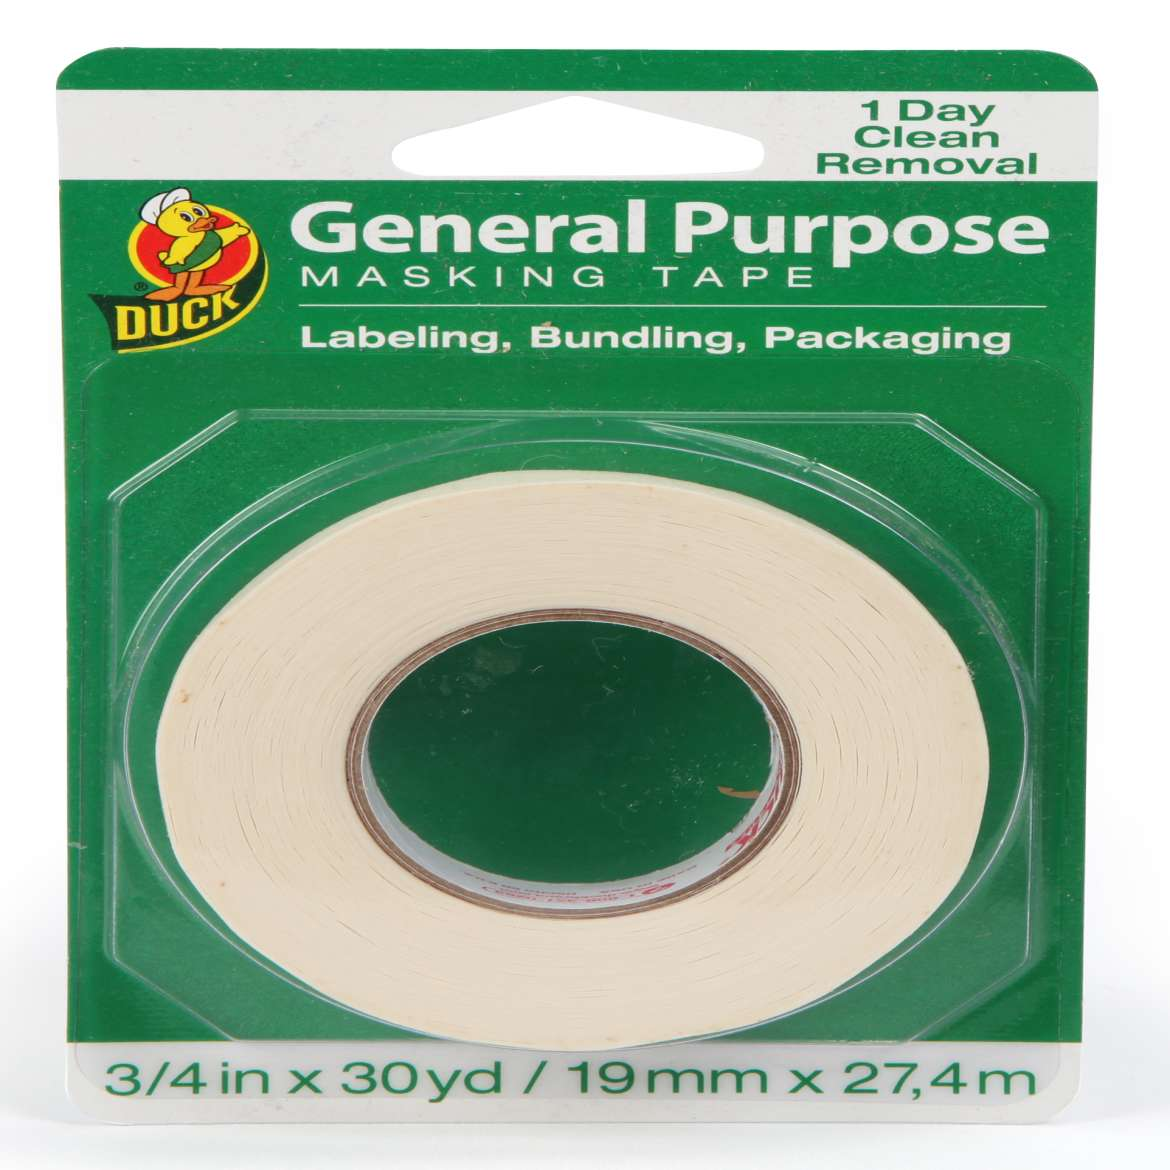 Duck® Brand General Purpose Masking Tape - Beige, .75 in. x 30 yd. Image